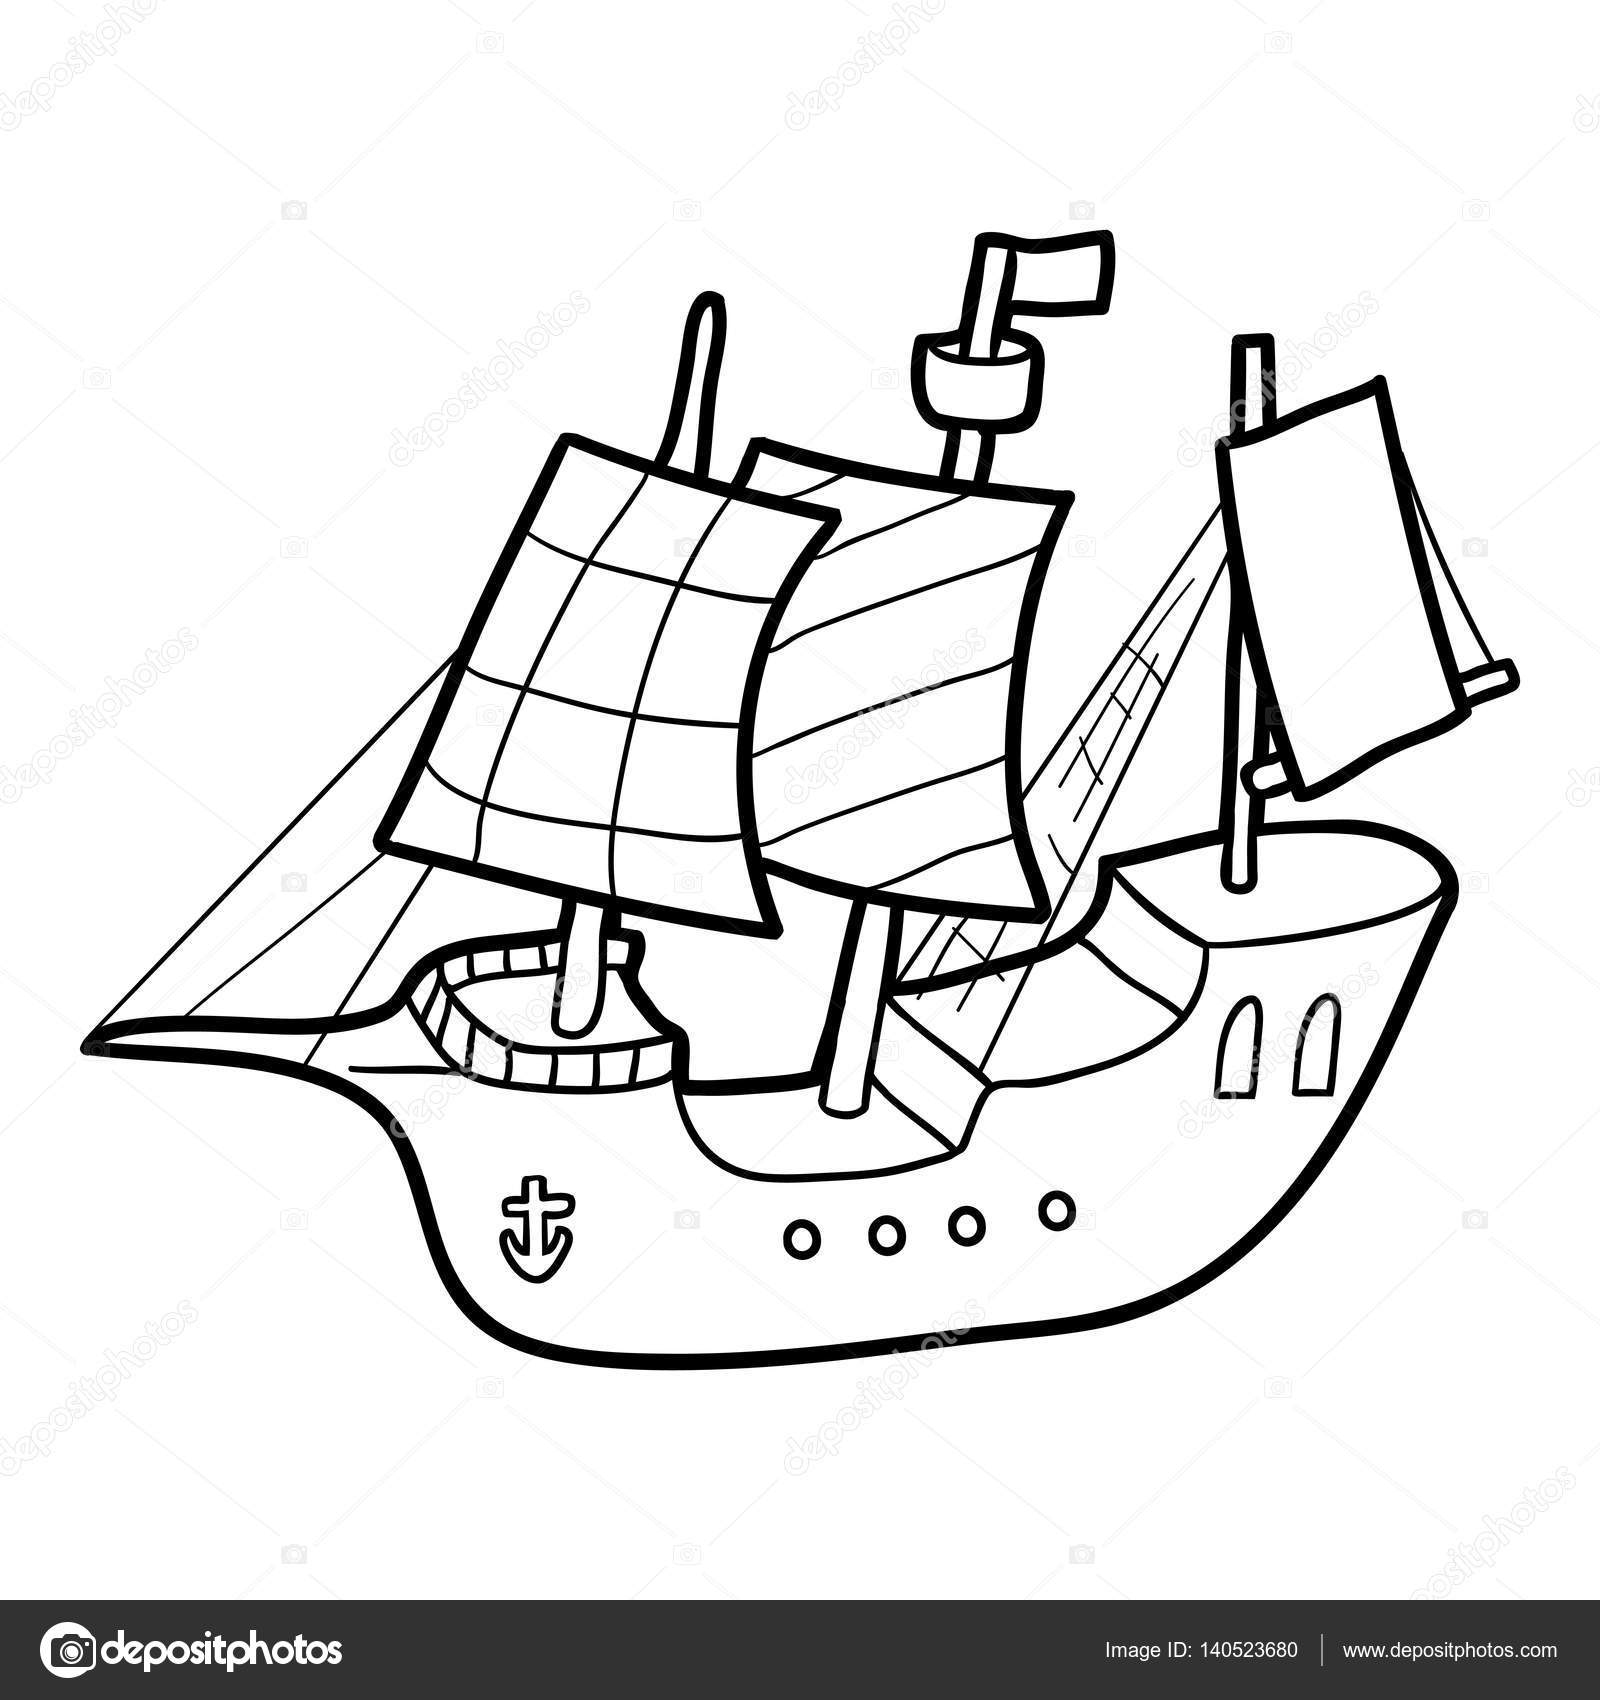 Coloring Book Sailing Ship Stock Vector C Ksenya Savva 140523680